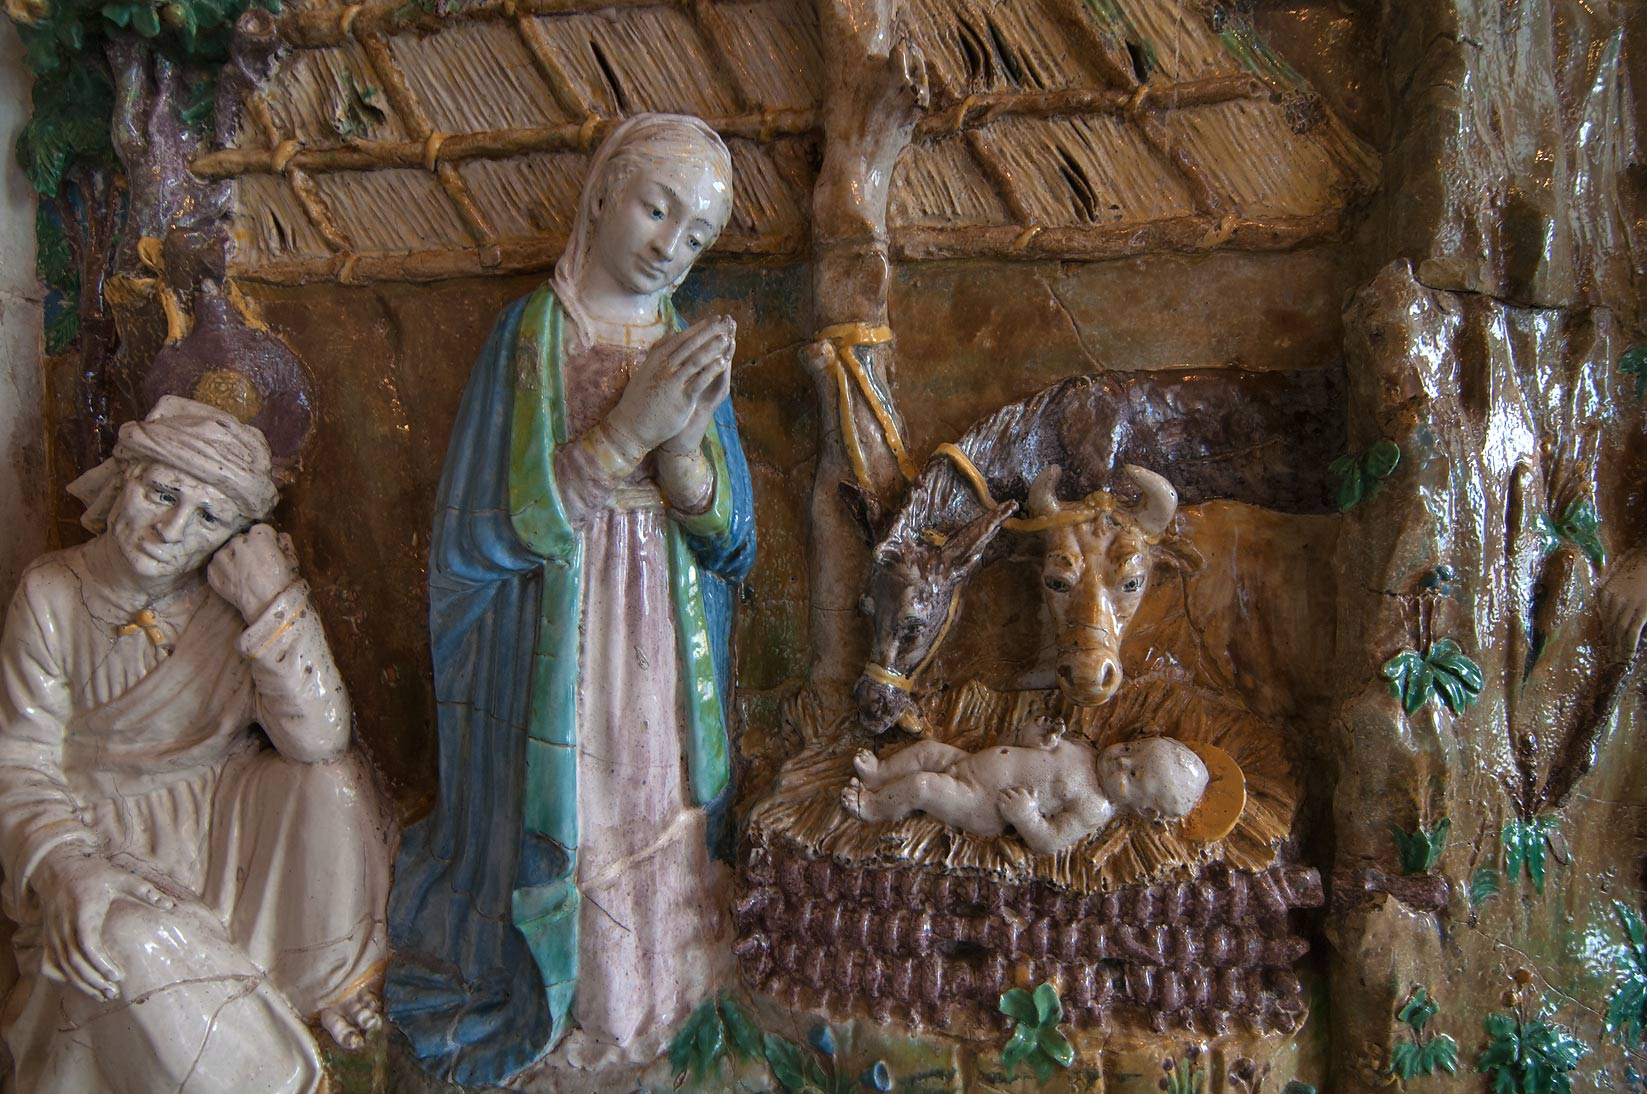 Nativity scene in Hermitage Museum. St.Petersburg, Russia